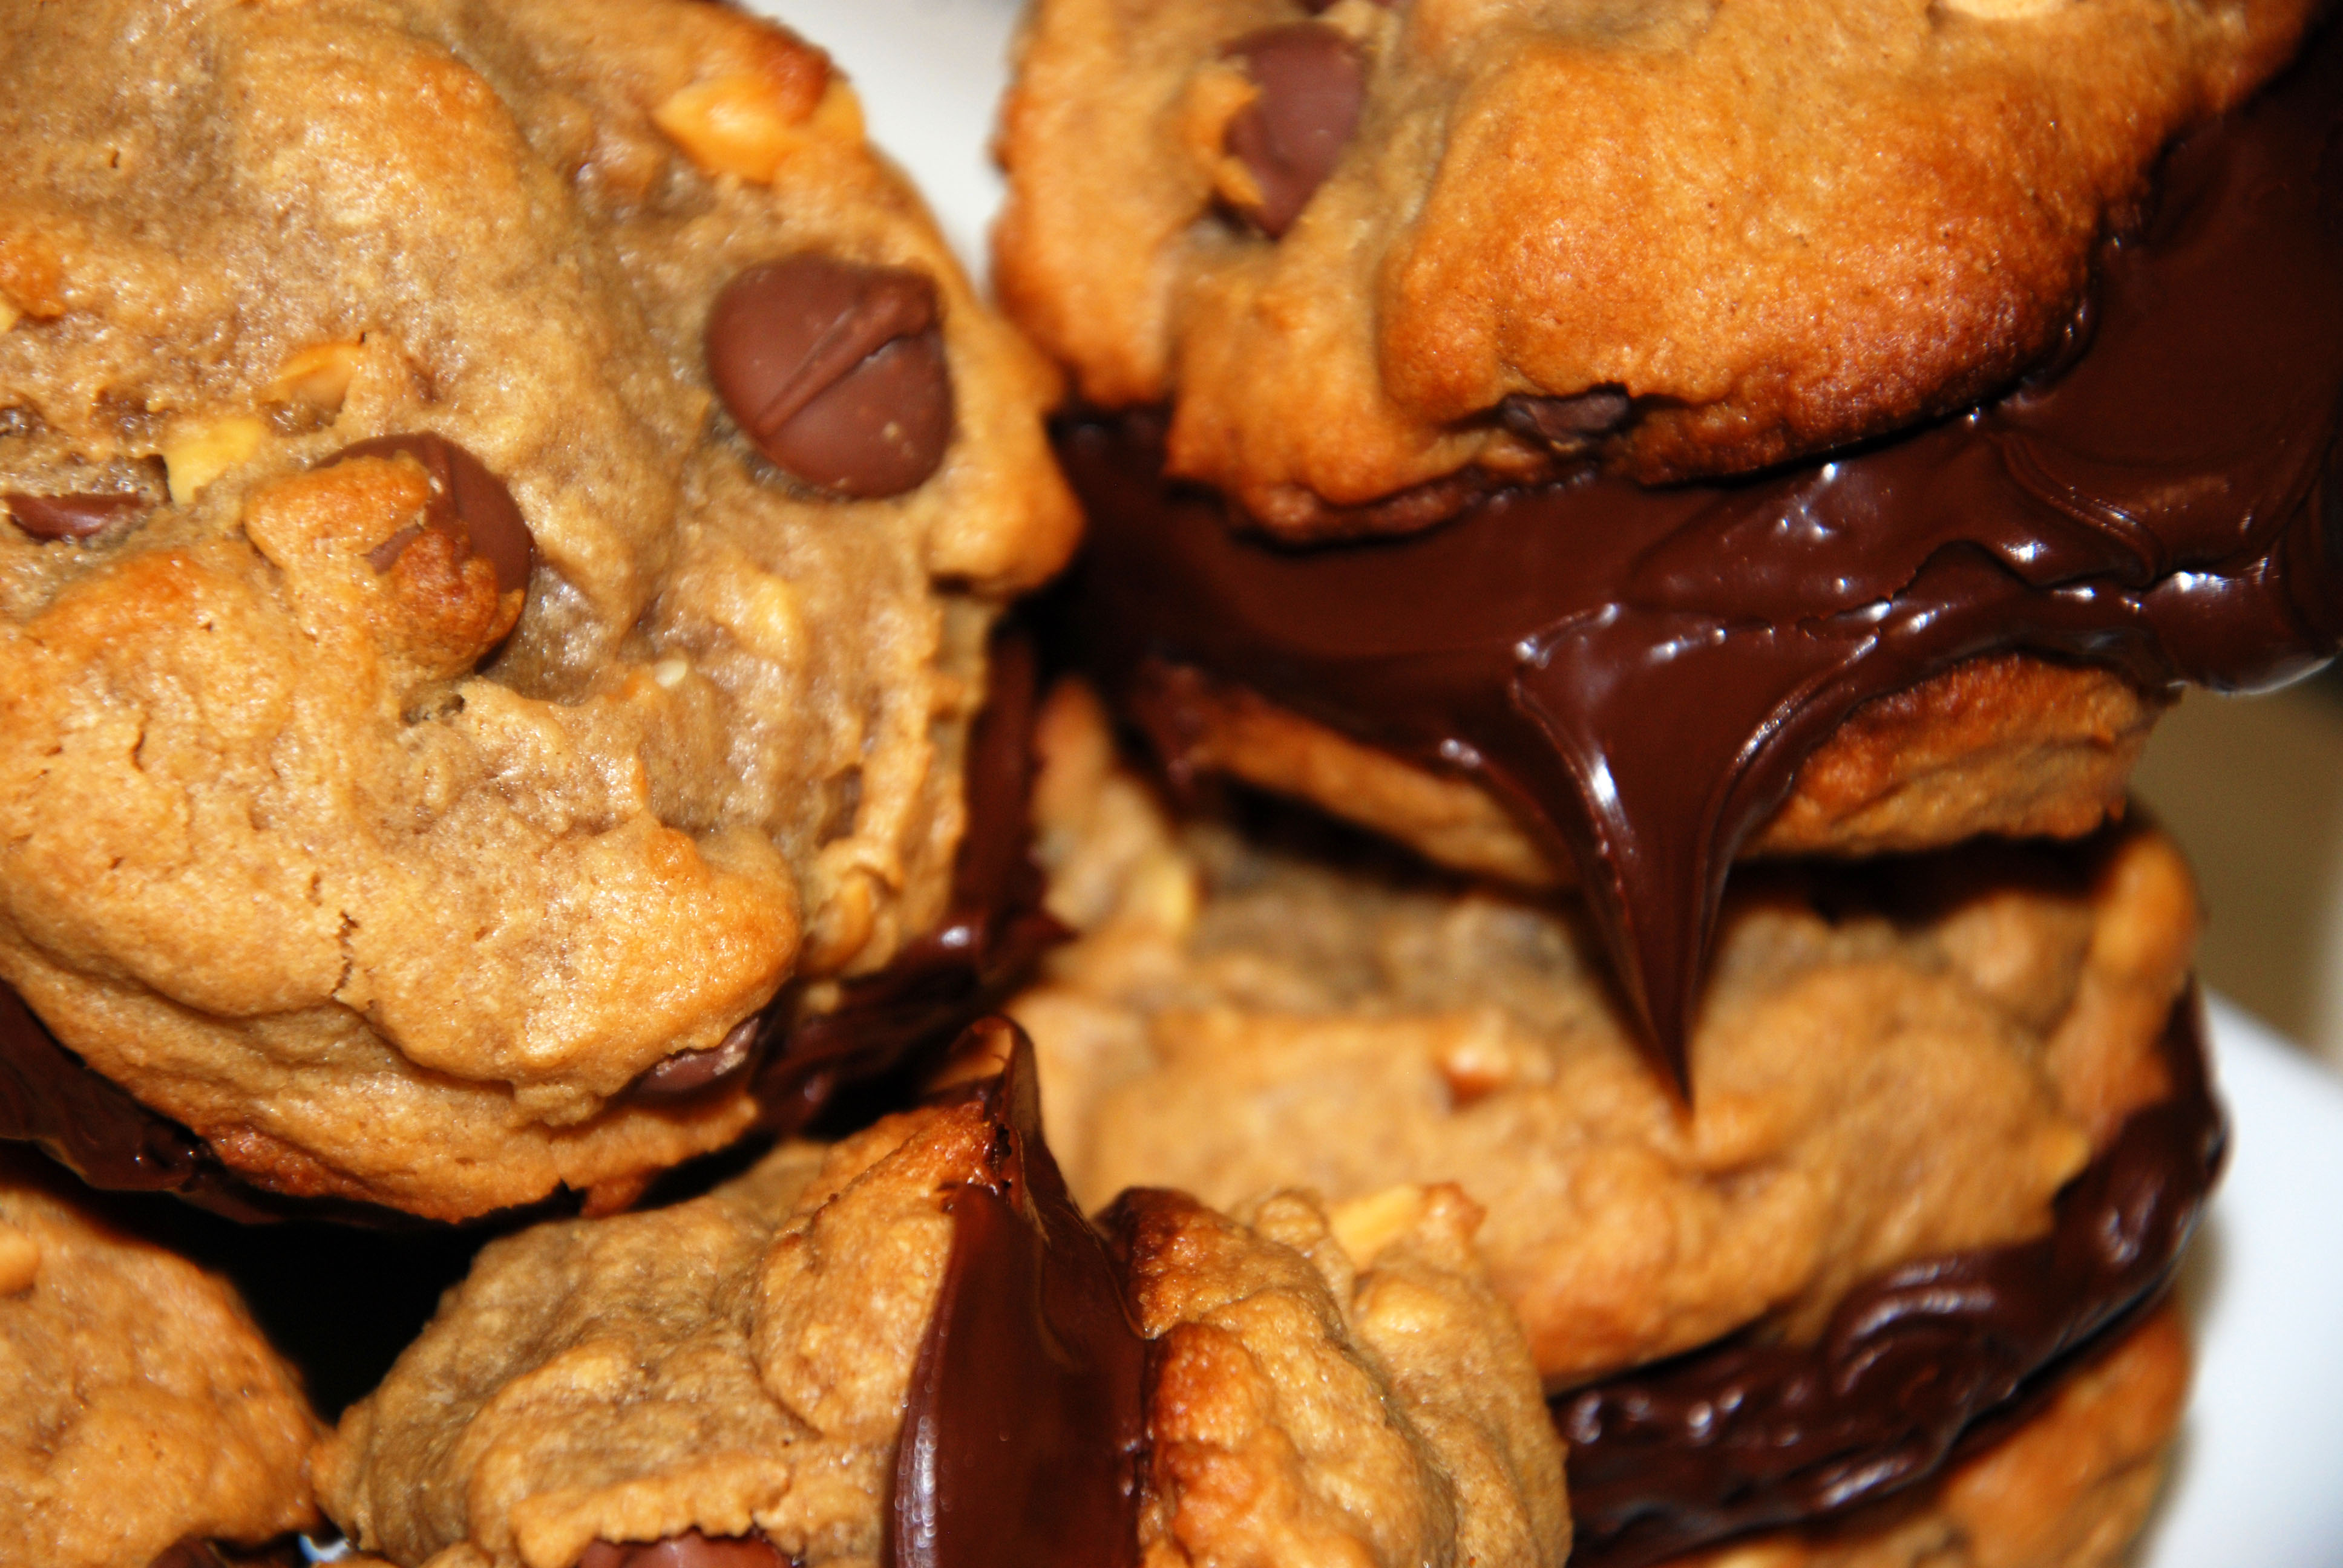 Peanut Butter Chocolate Chip Cookie Sandwiches